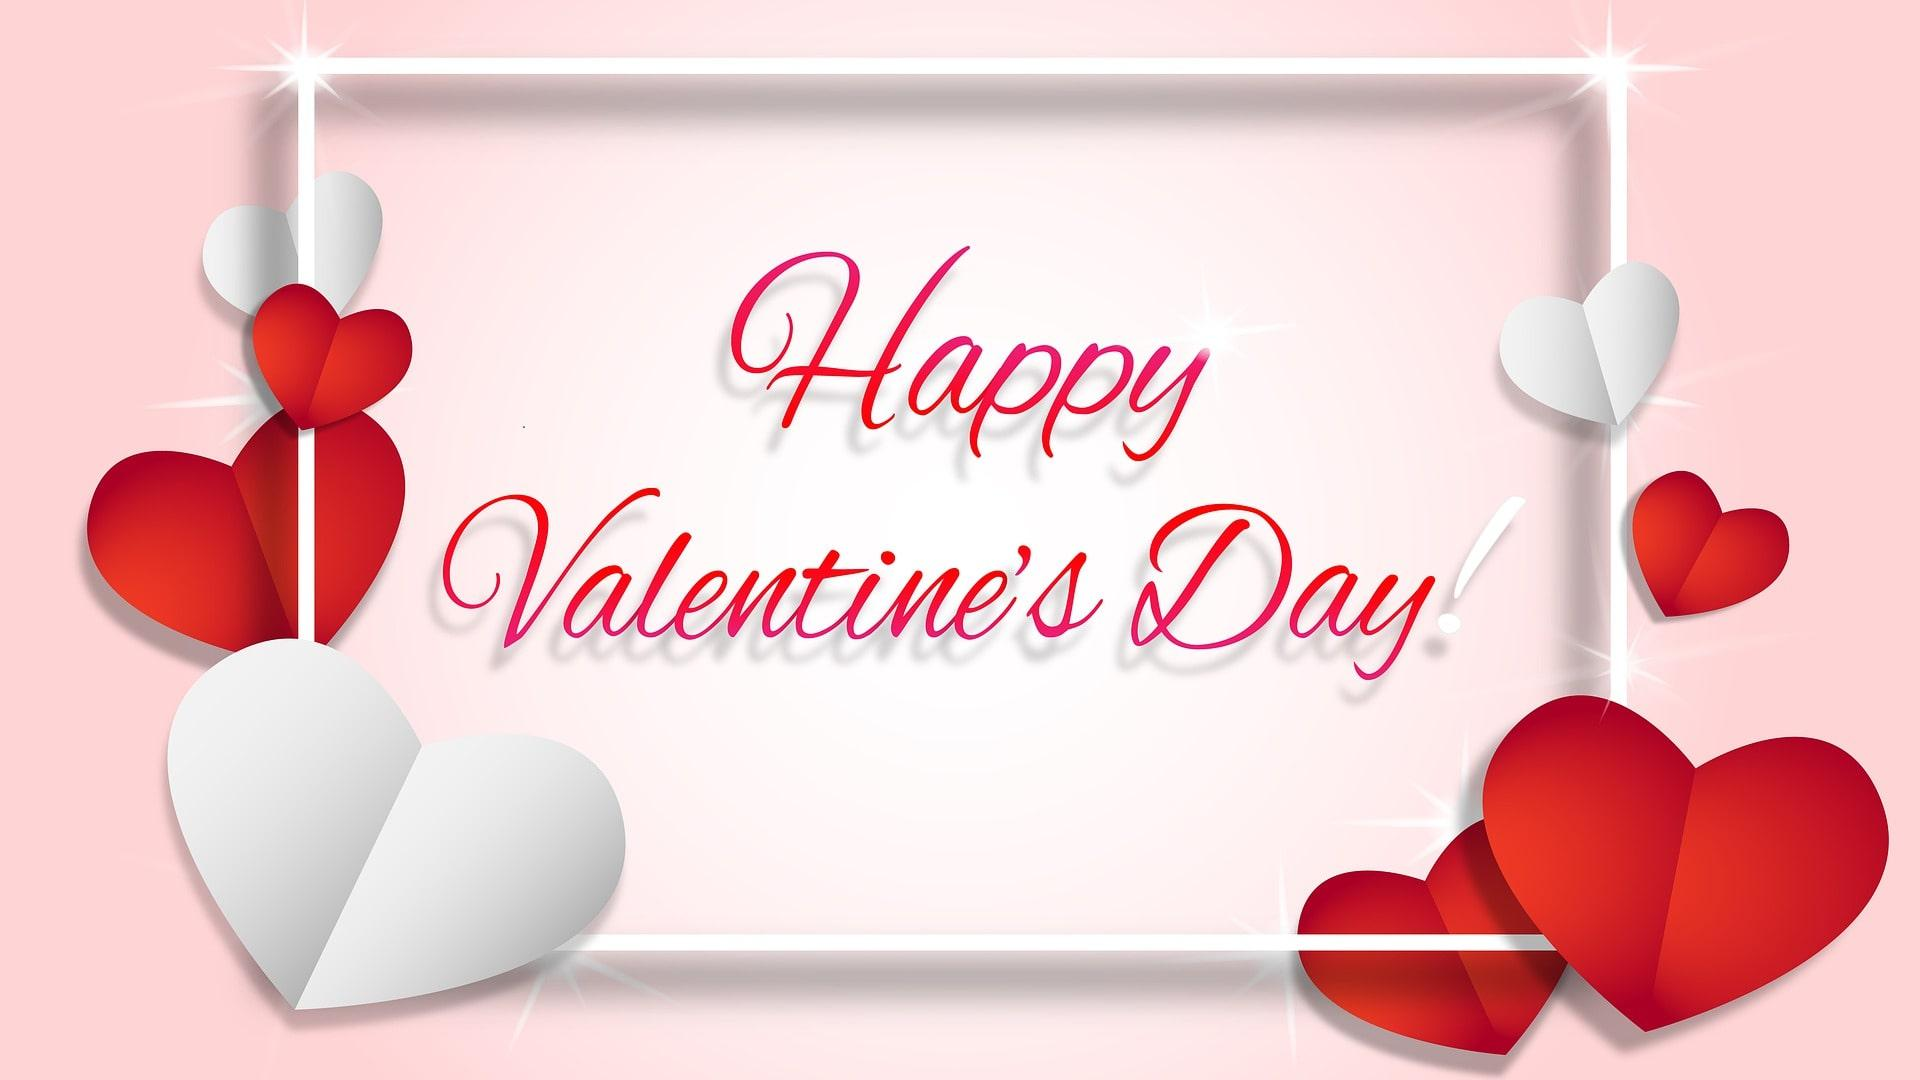 We are sharing the Best collection of Happy Valentine's Day Image